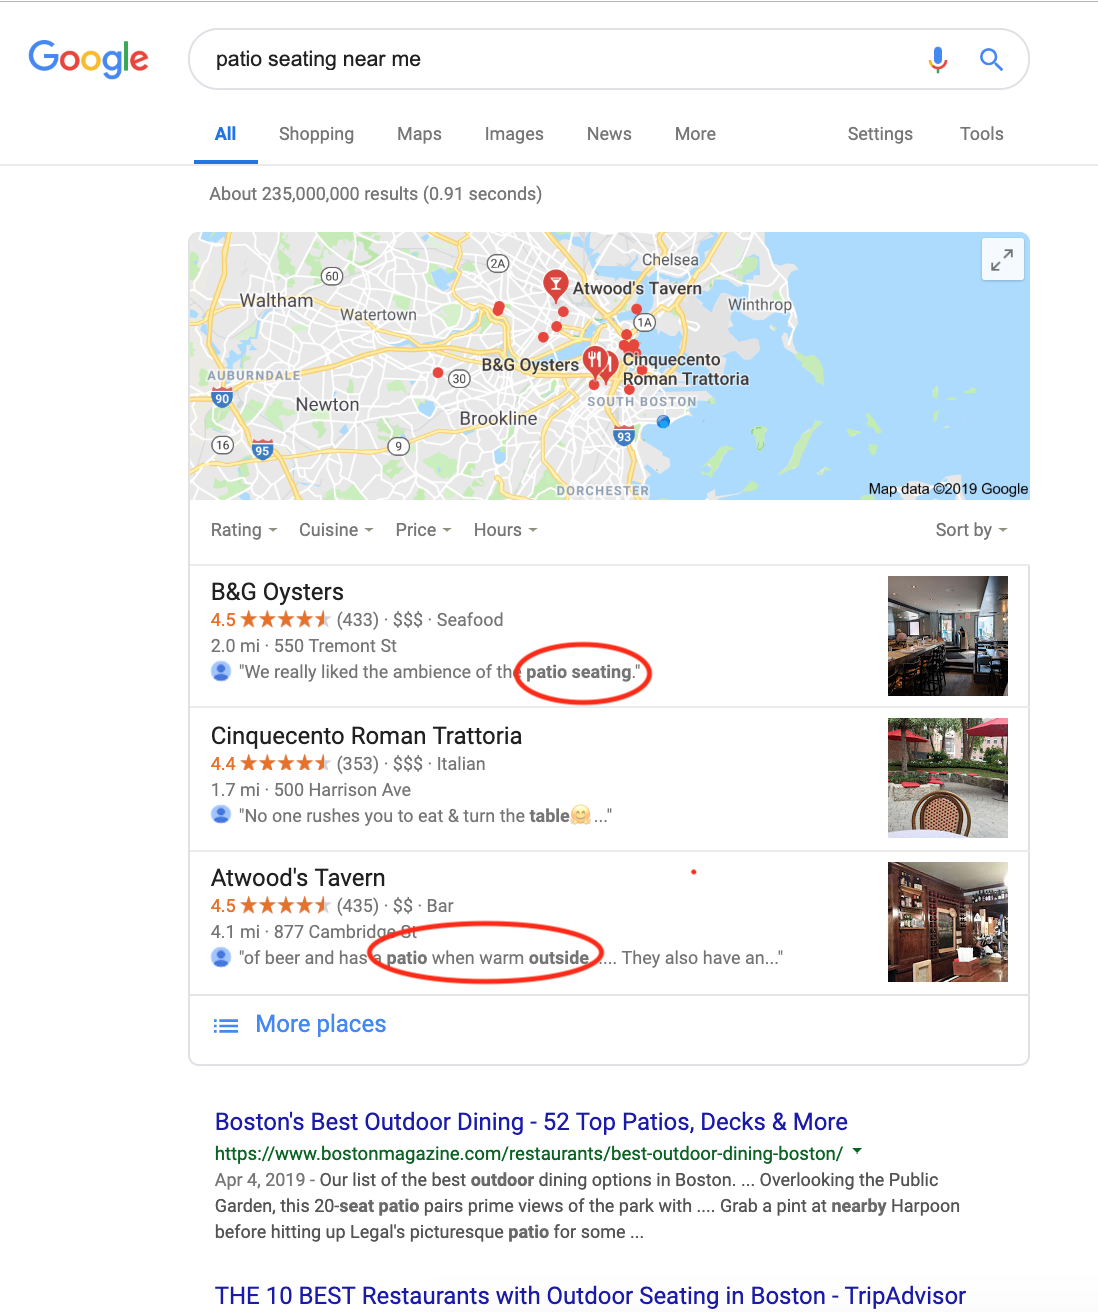 how to get free advertising on google attributes in reviews